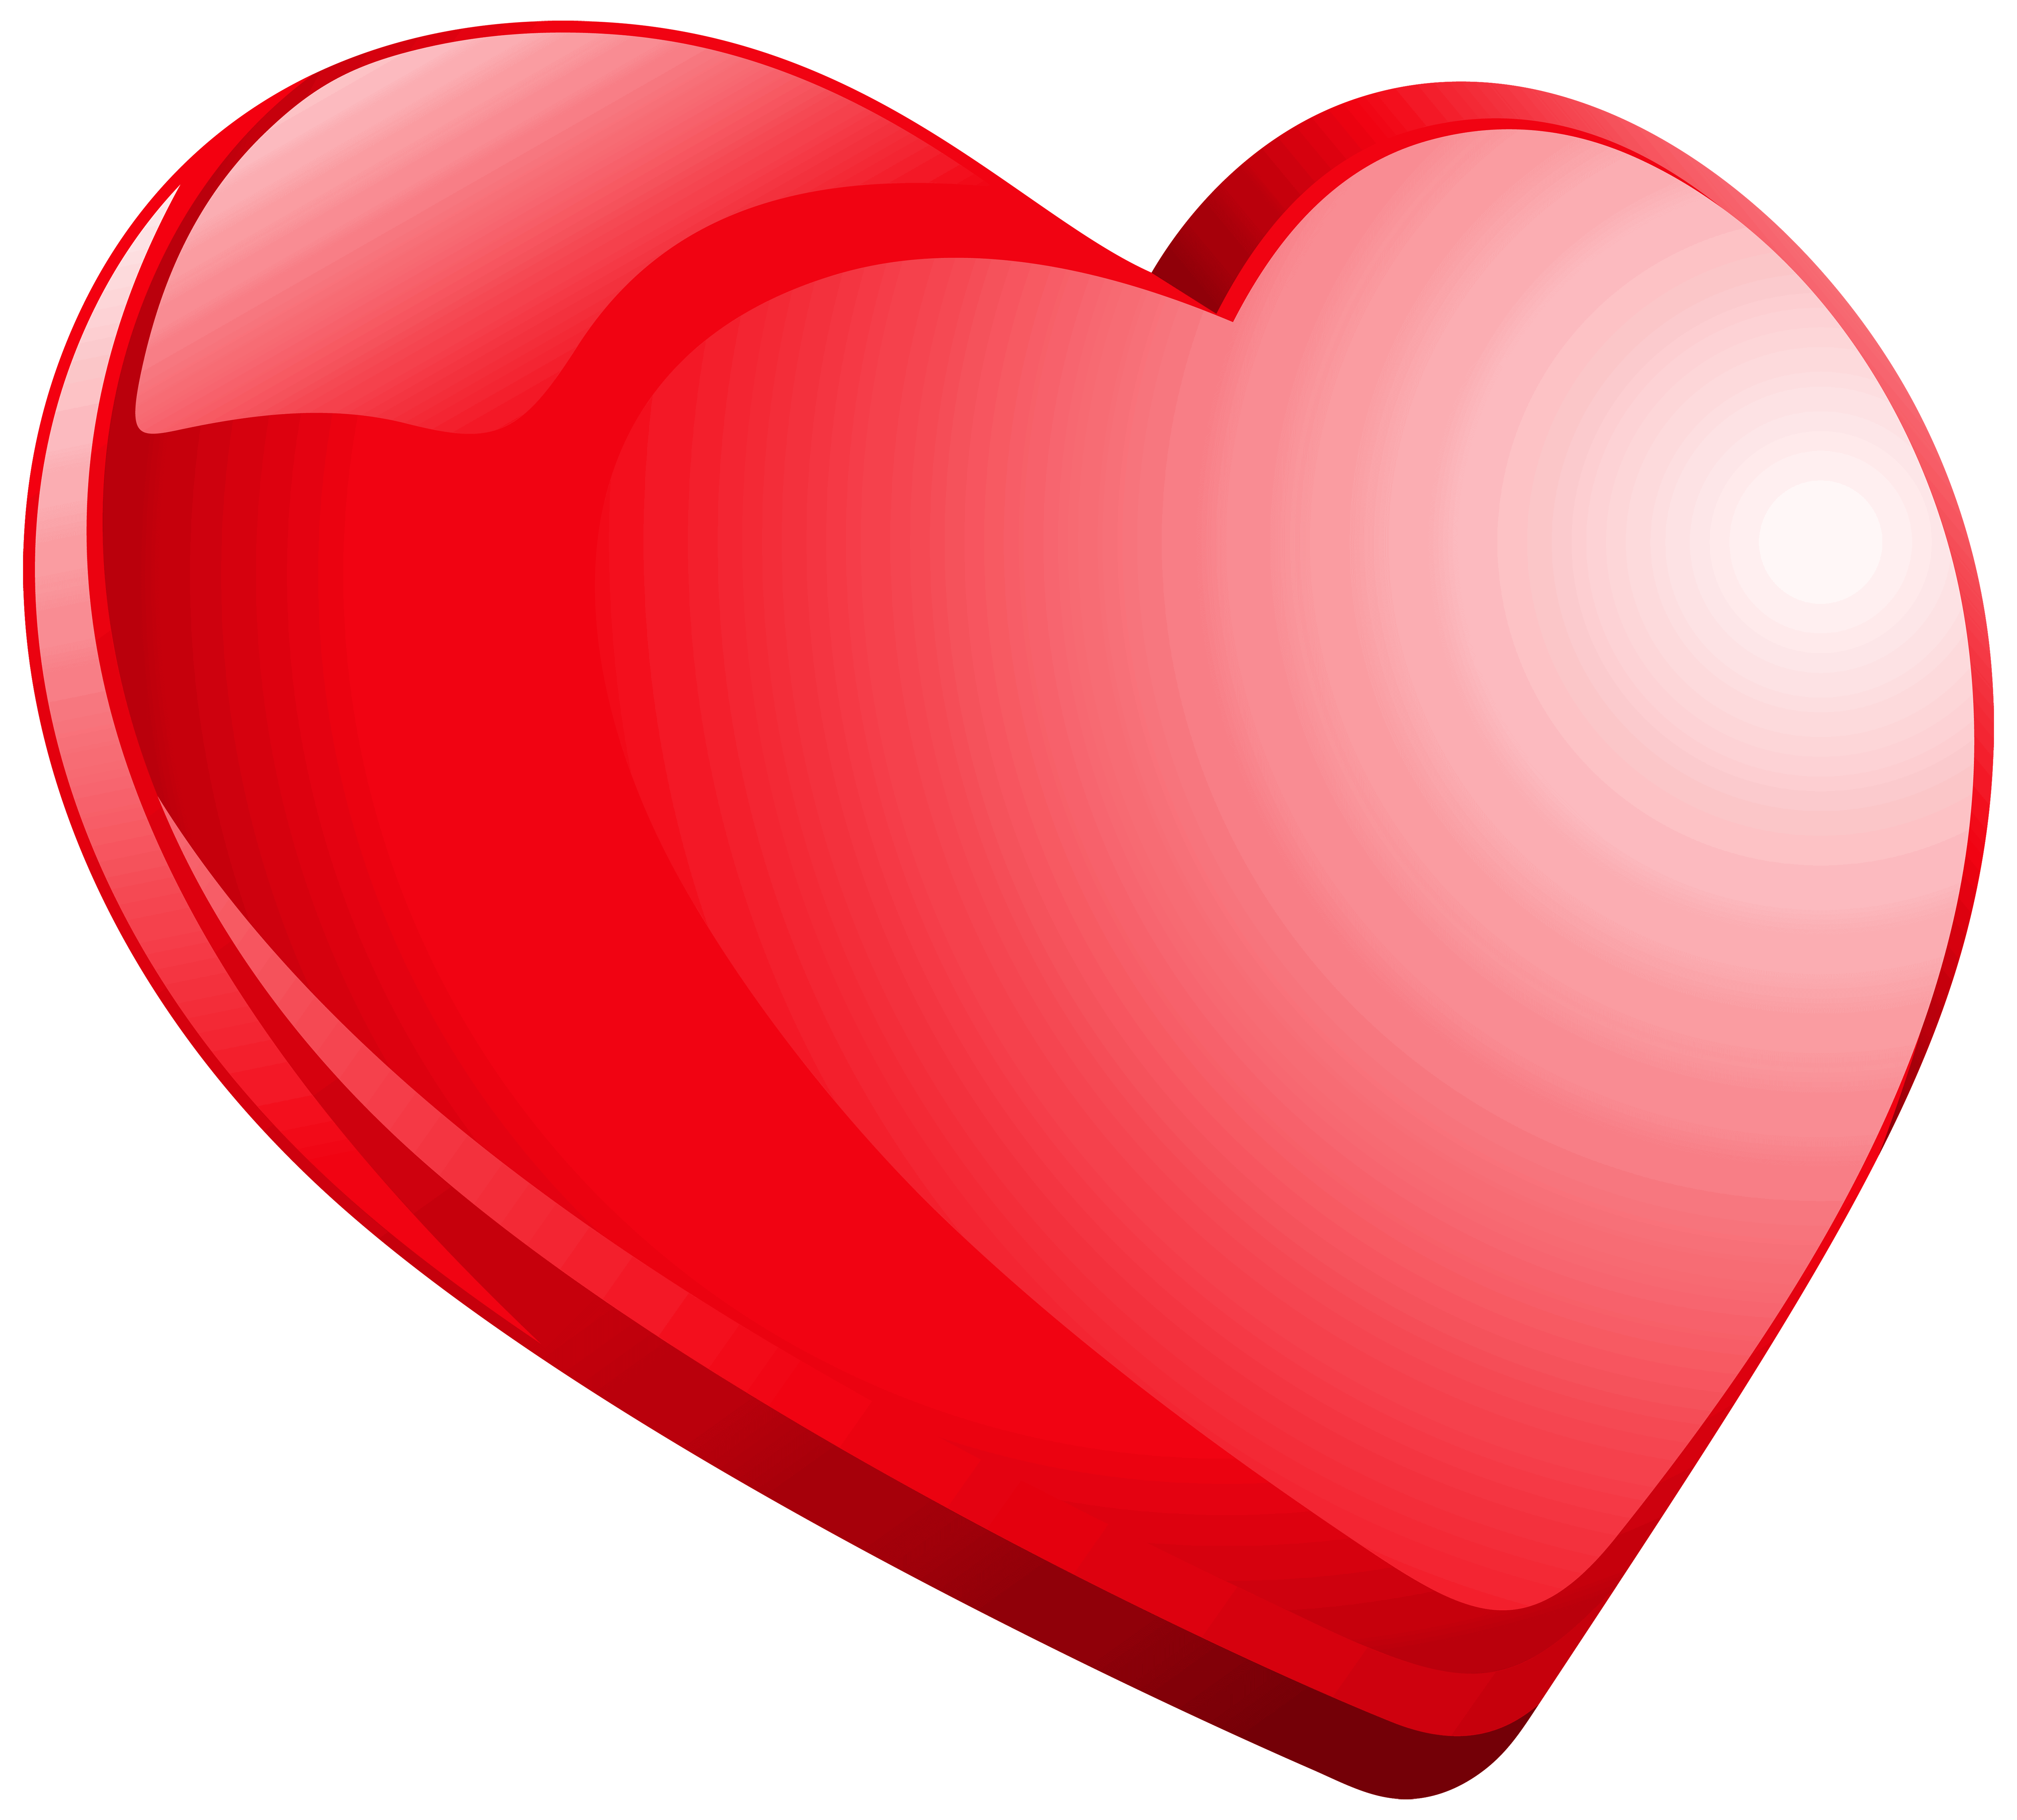 Heart Red PNG clipart